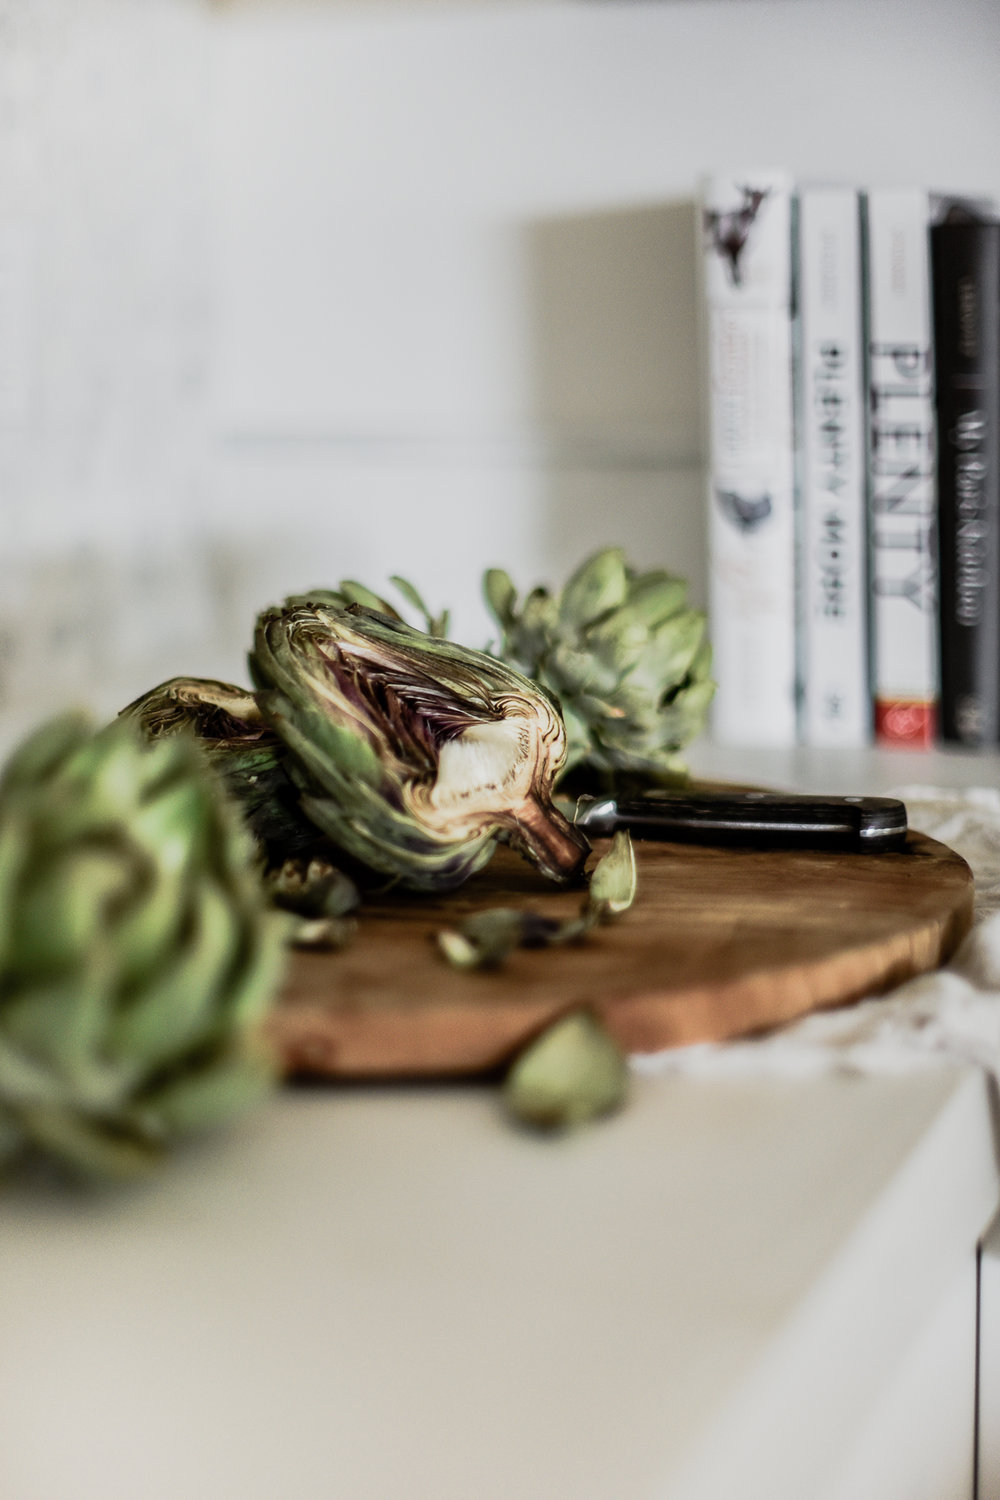 how to grow your own artichokes | beautiful photography | boxwoodavenue.com